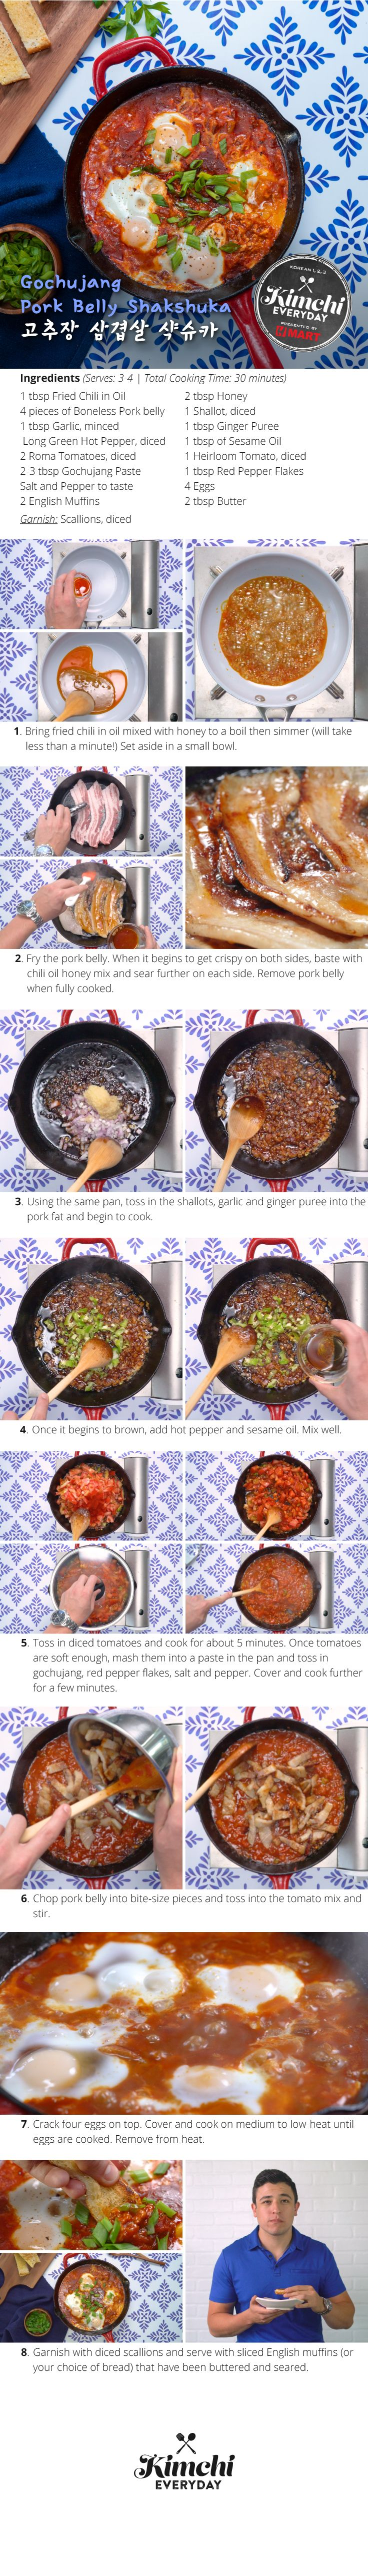 htc_gochujang pork belly shakshuka_1